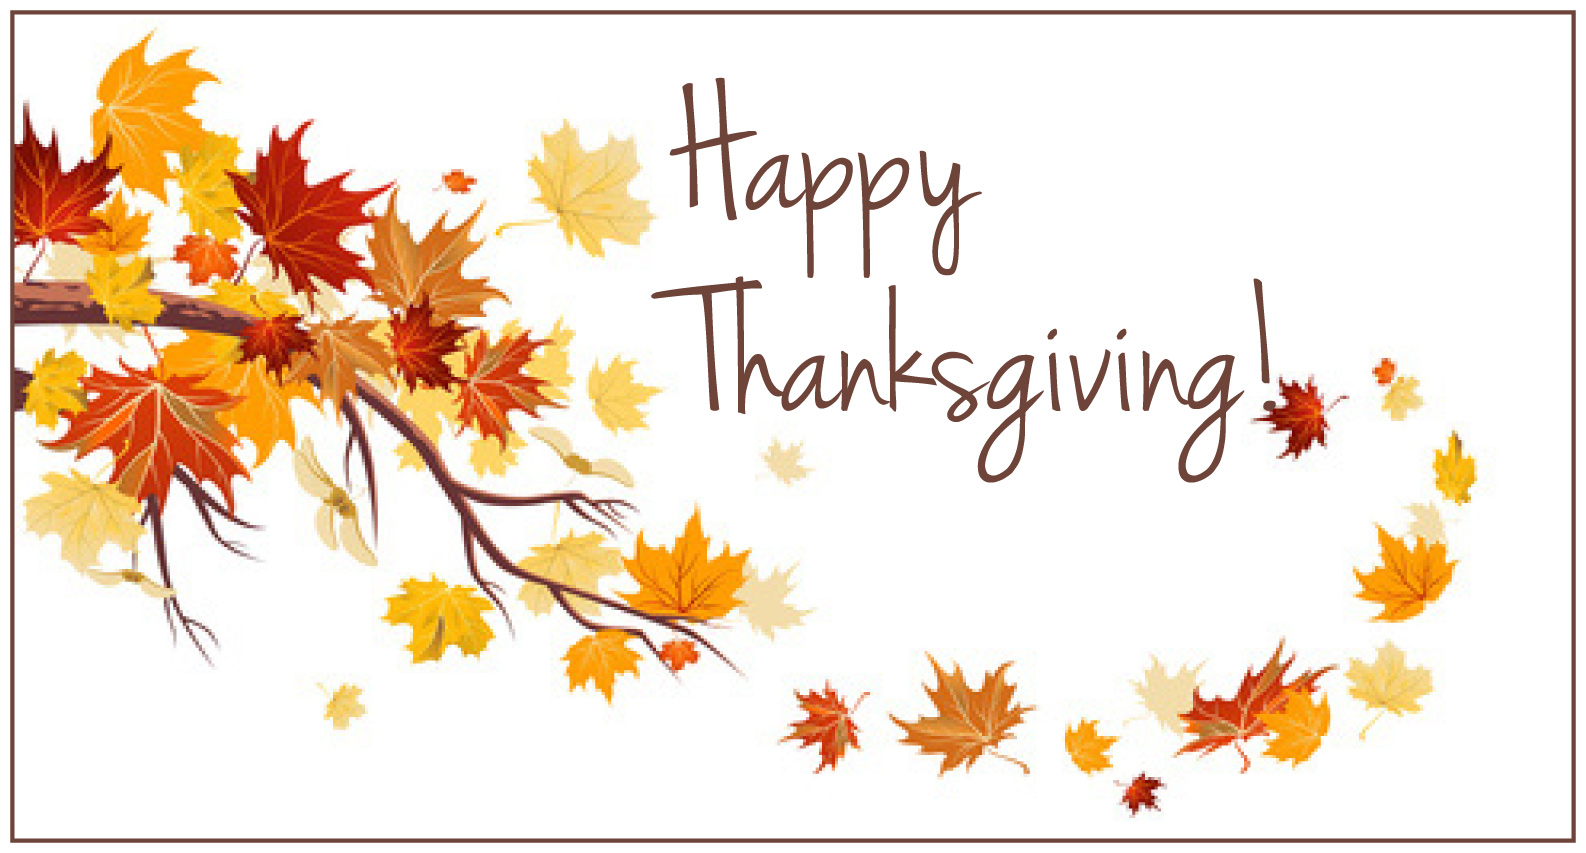 Happy Thanksgiving Banner Clip Art 1 Tomato Soup In 20 Minutes!